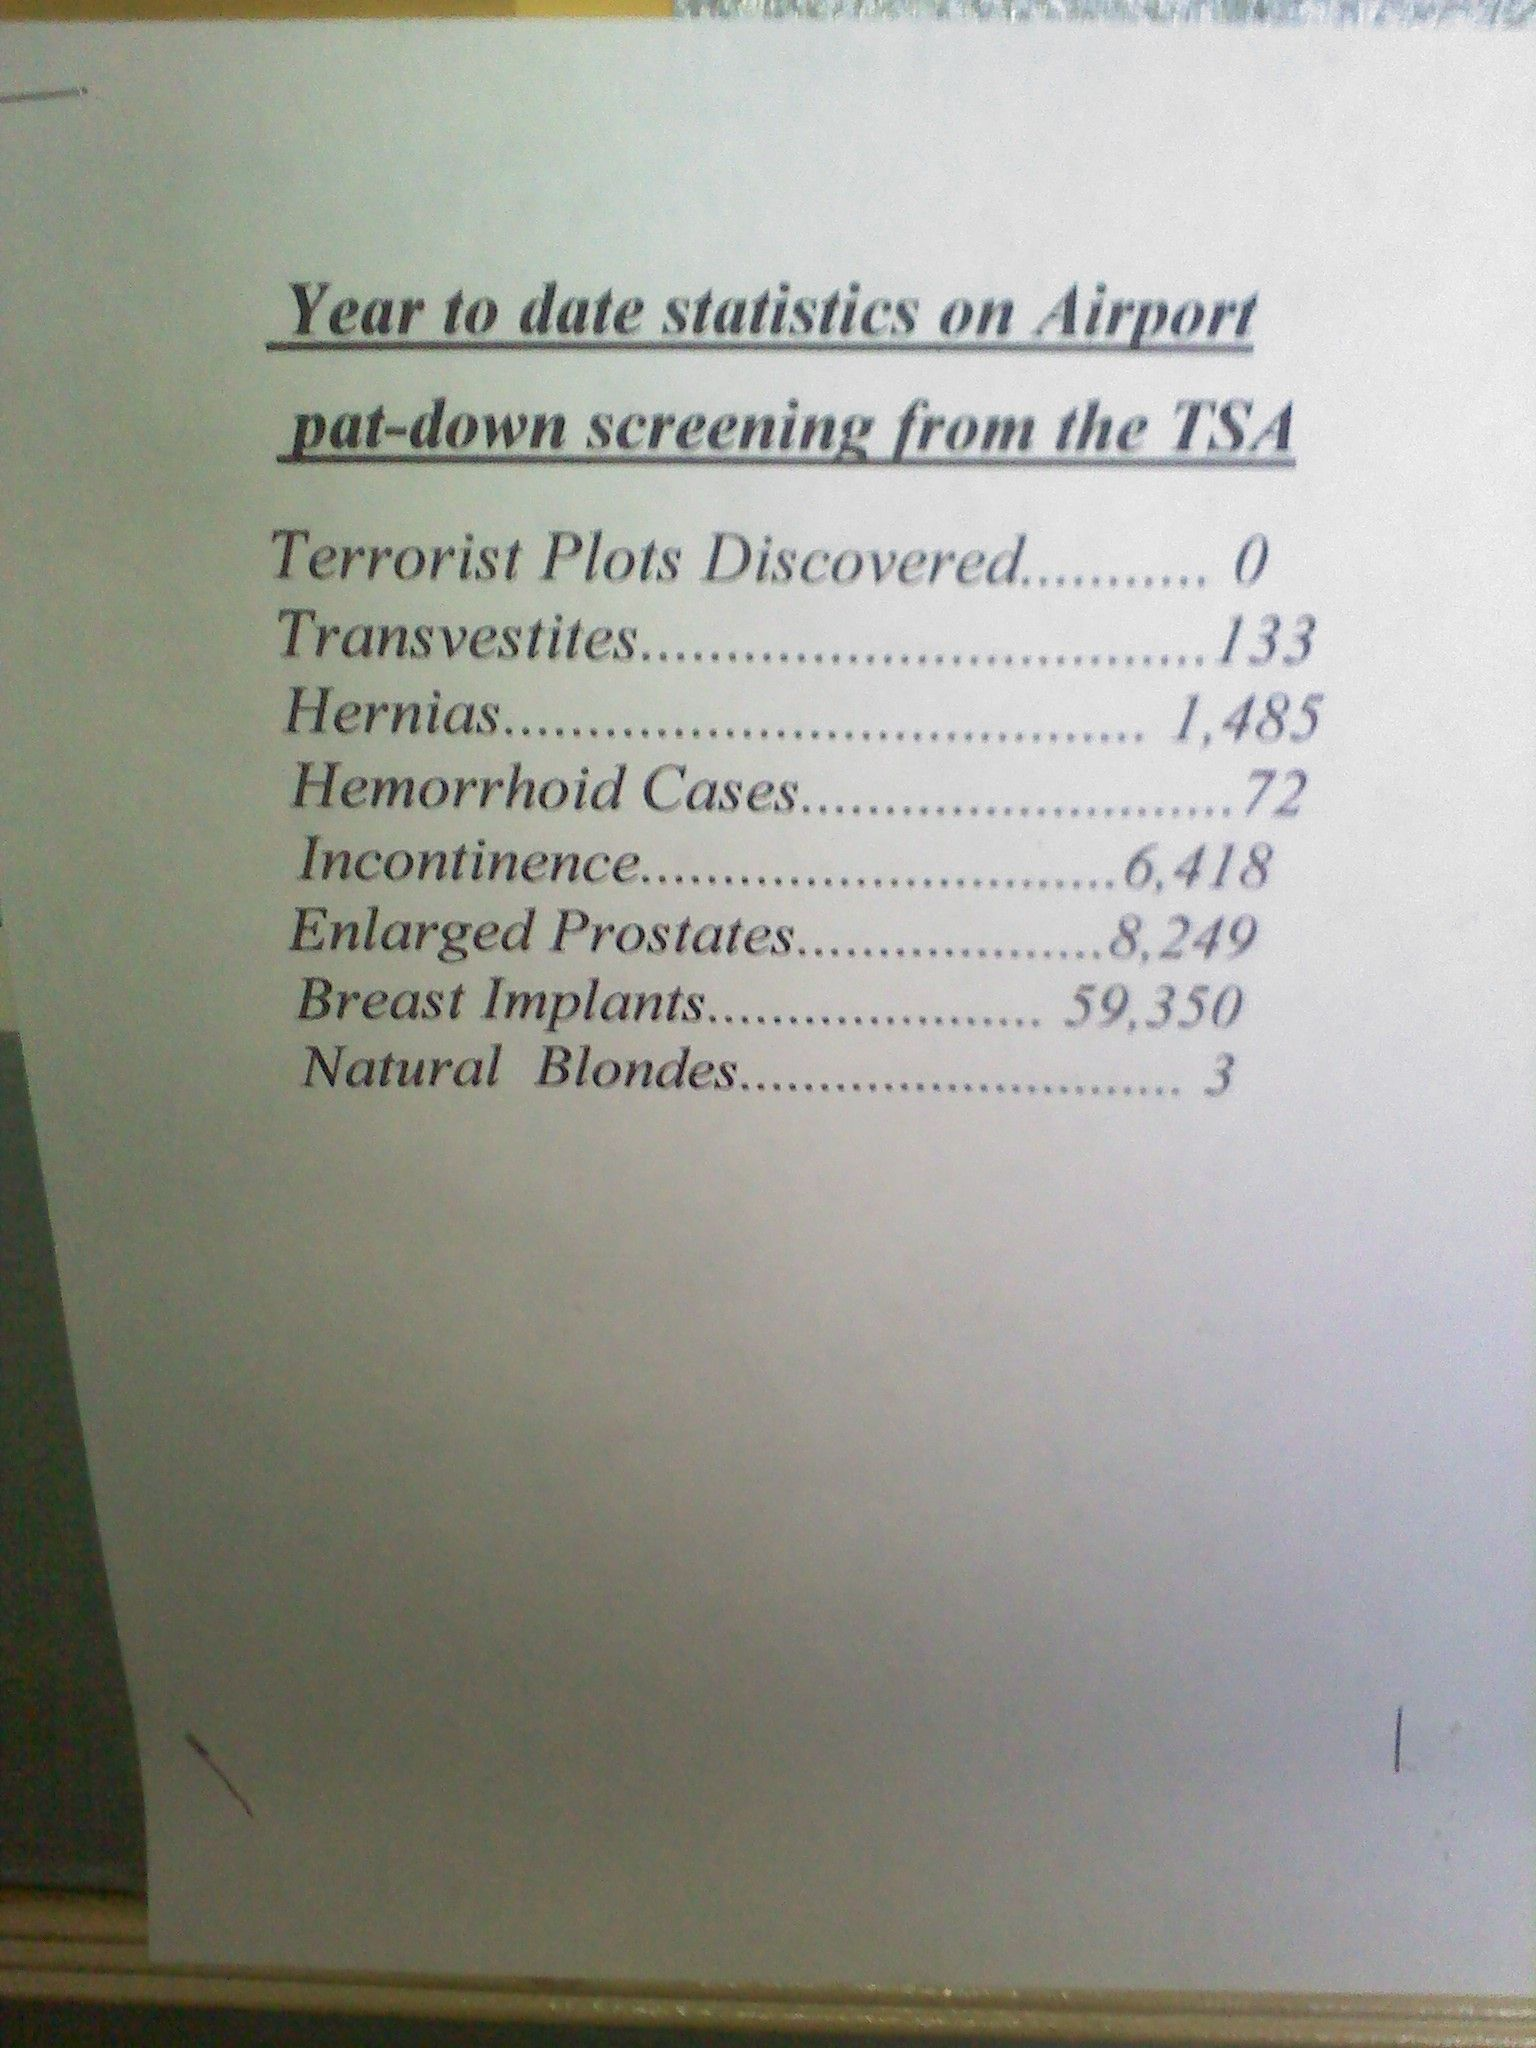 I Work At An Airport This Was Posted In Our Break Room Today Funny Airport Just For Laughs College Humor